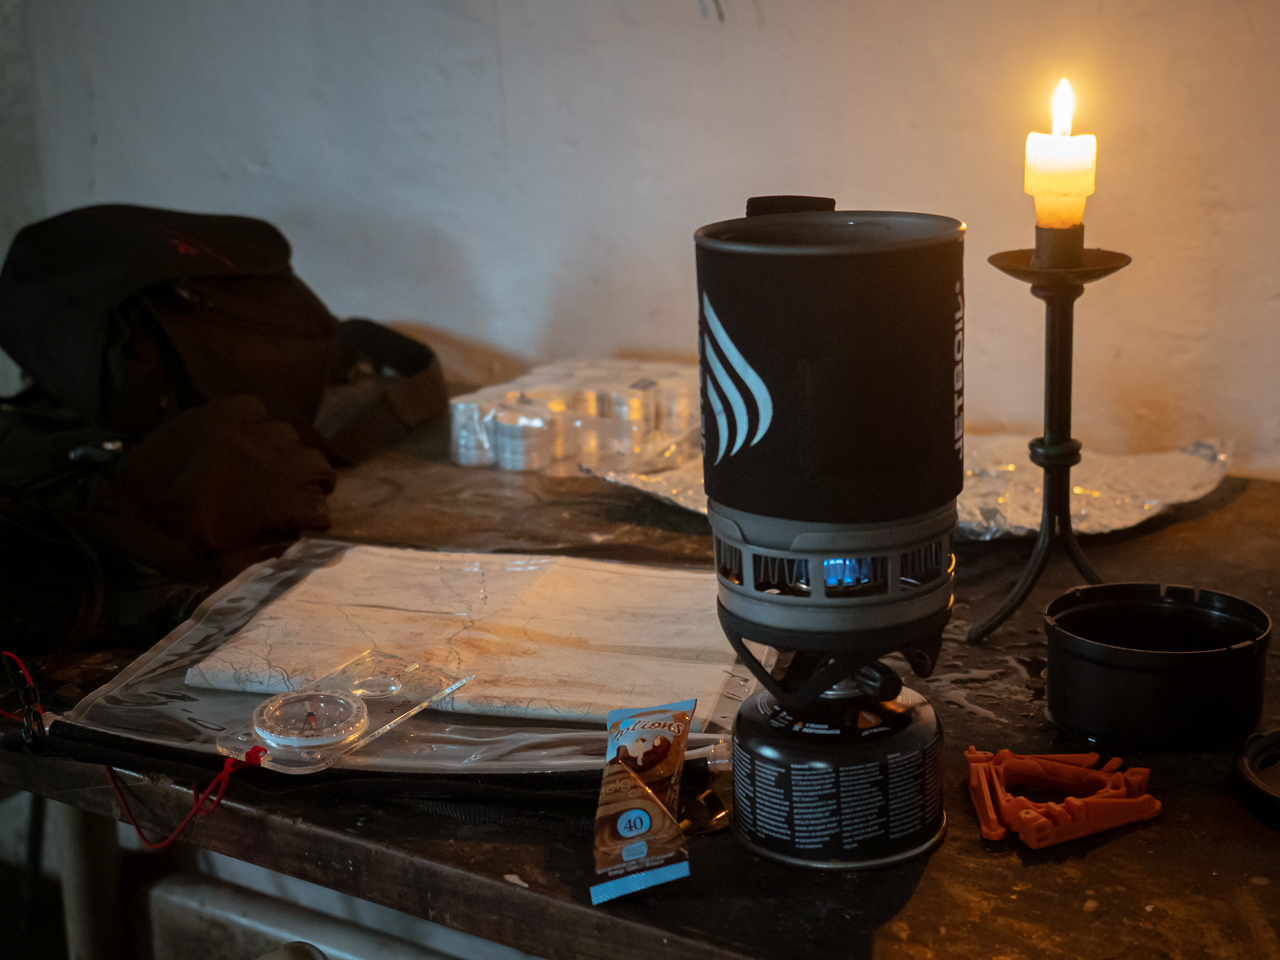 A Jetboil stove cooks food in Mosedale Cottage, a bothy in the Lake District, Cumbria, England.